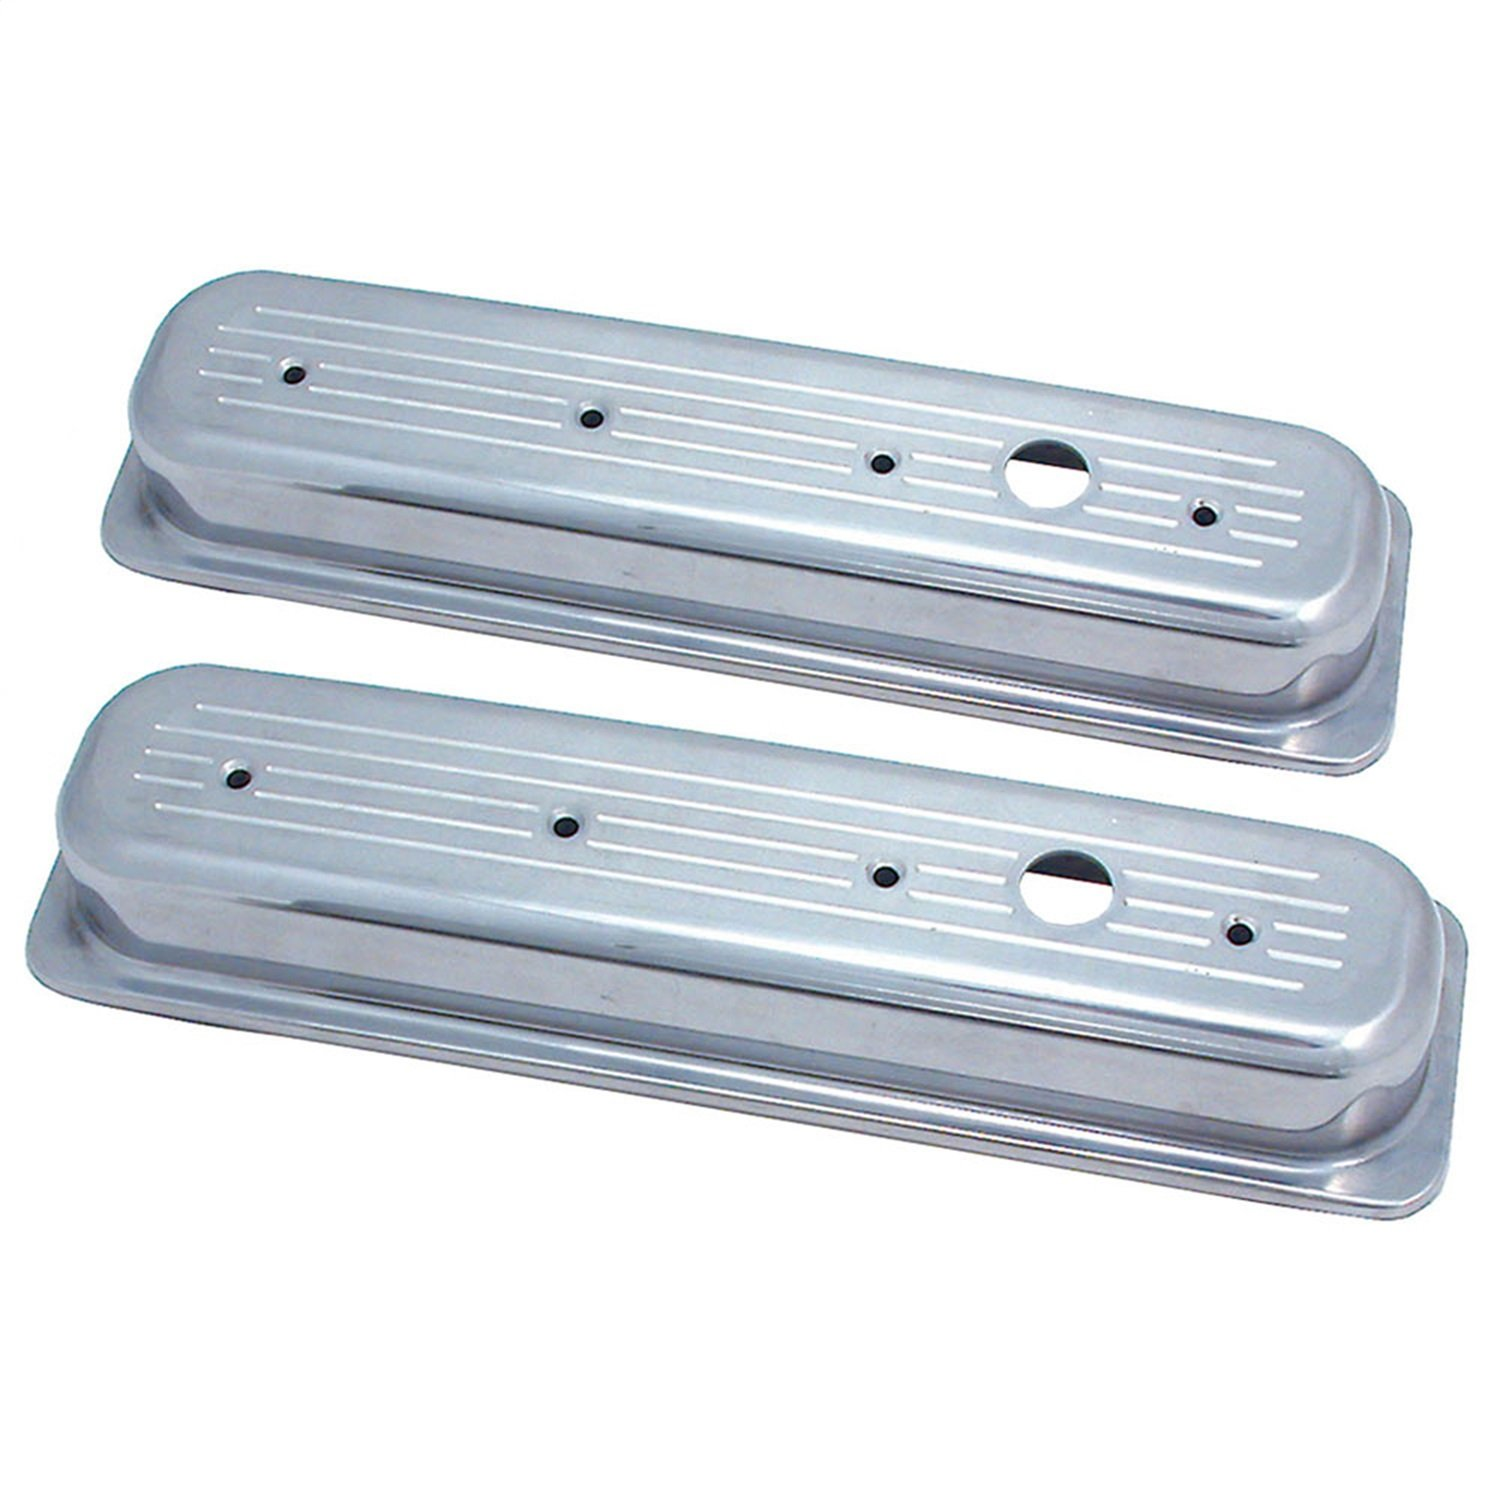 Spectre Performance 4995 Ball Milled aluminum Valve Cover for Small Block Chevy